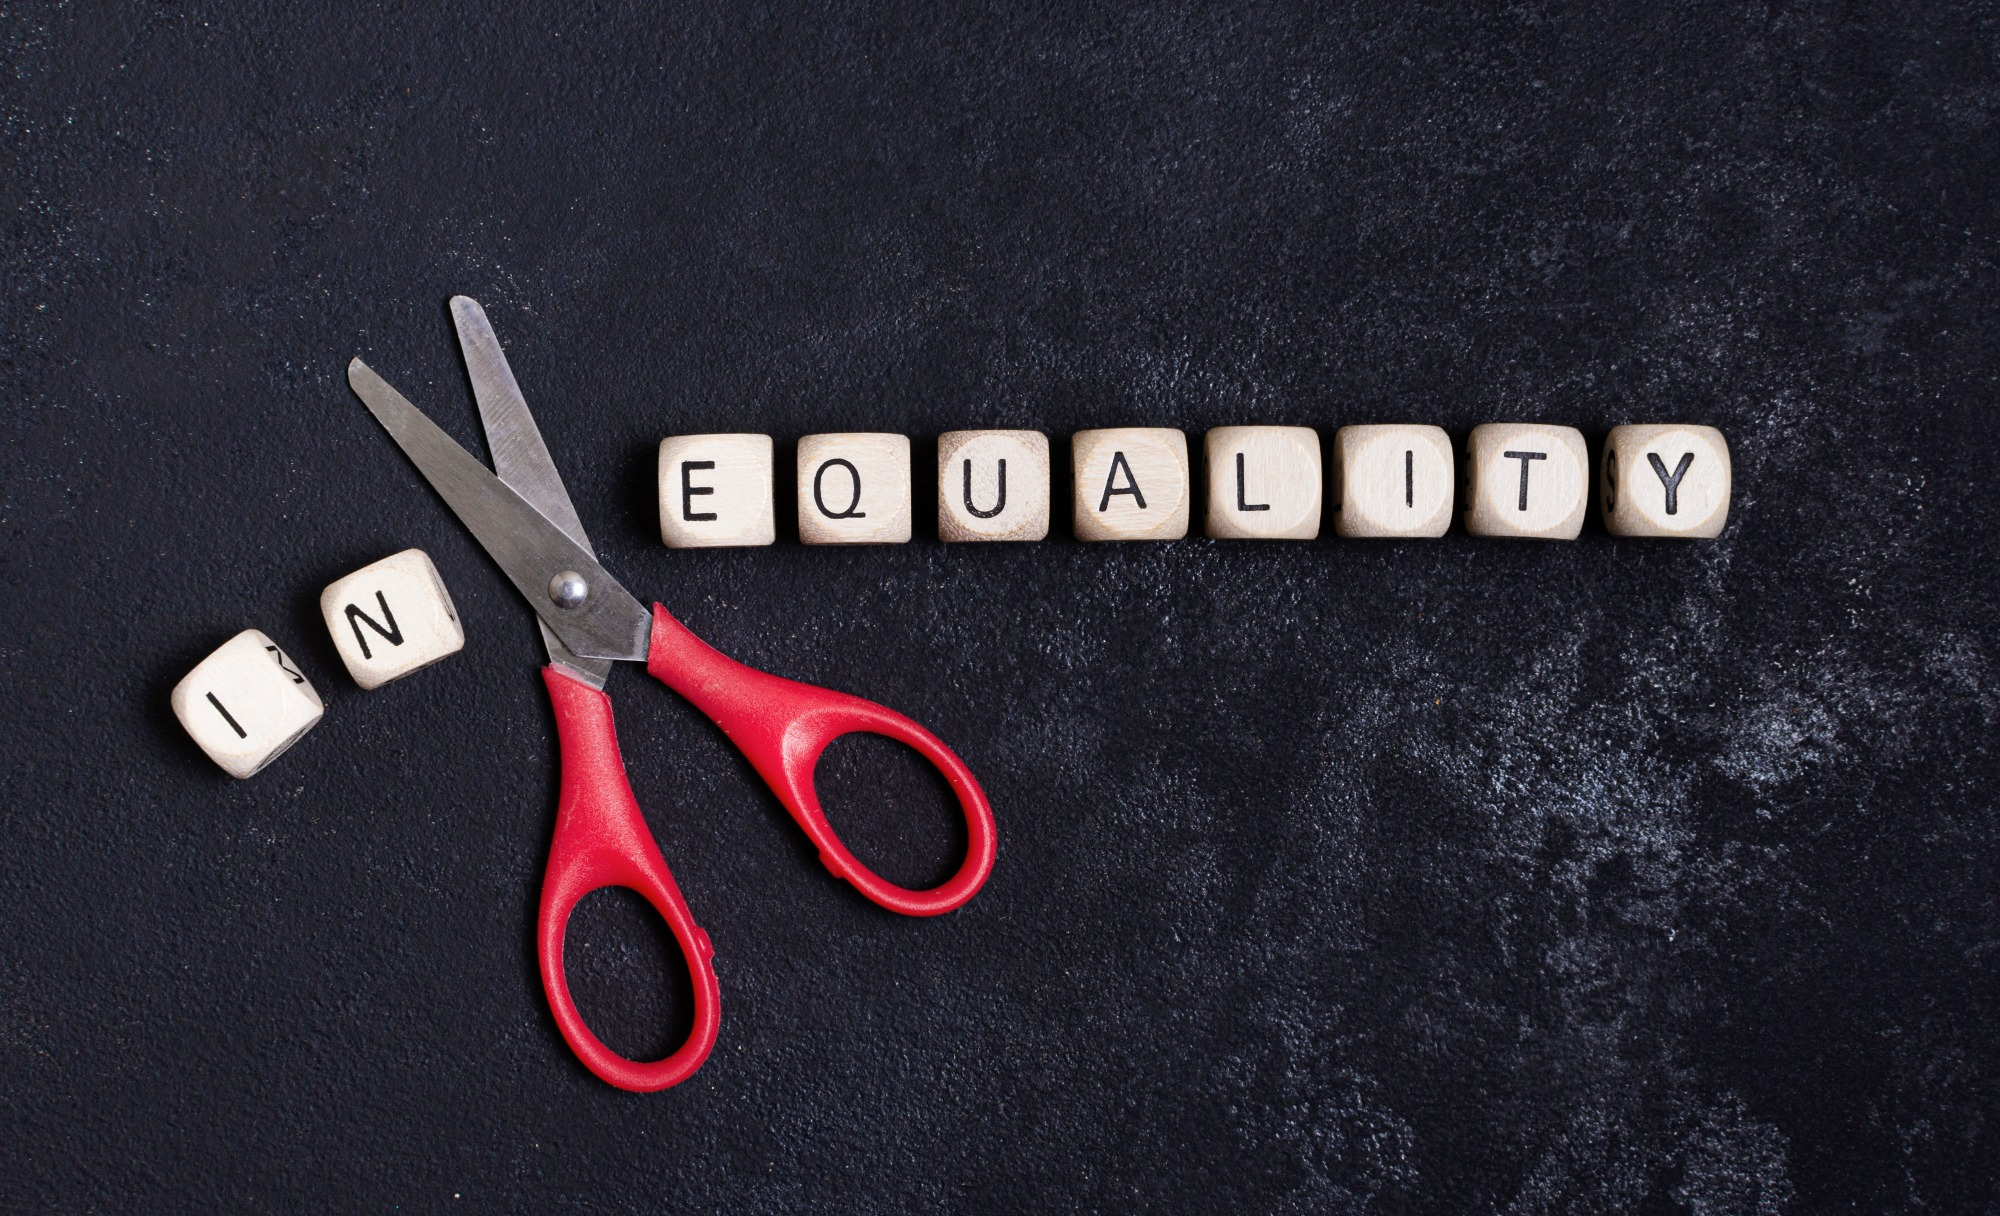 equality-inequality-concept-with-scissors